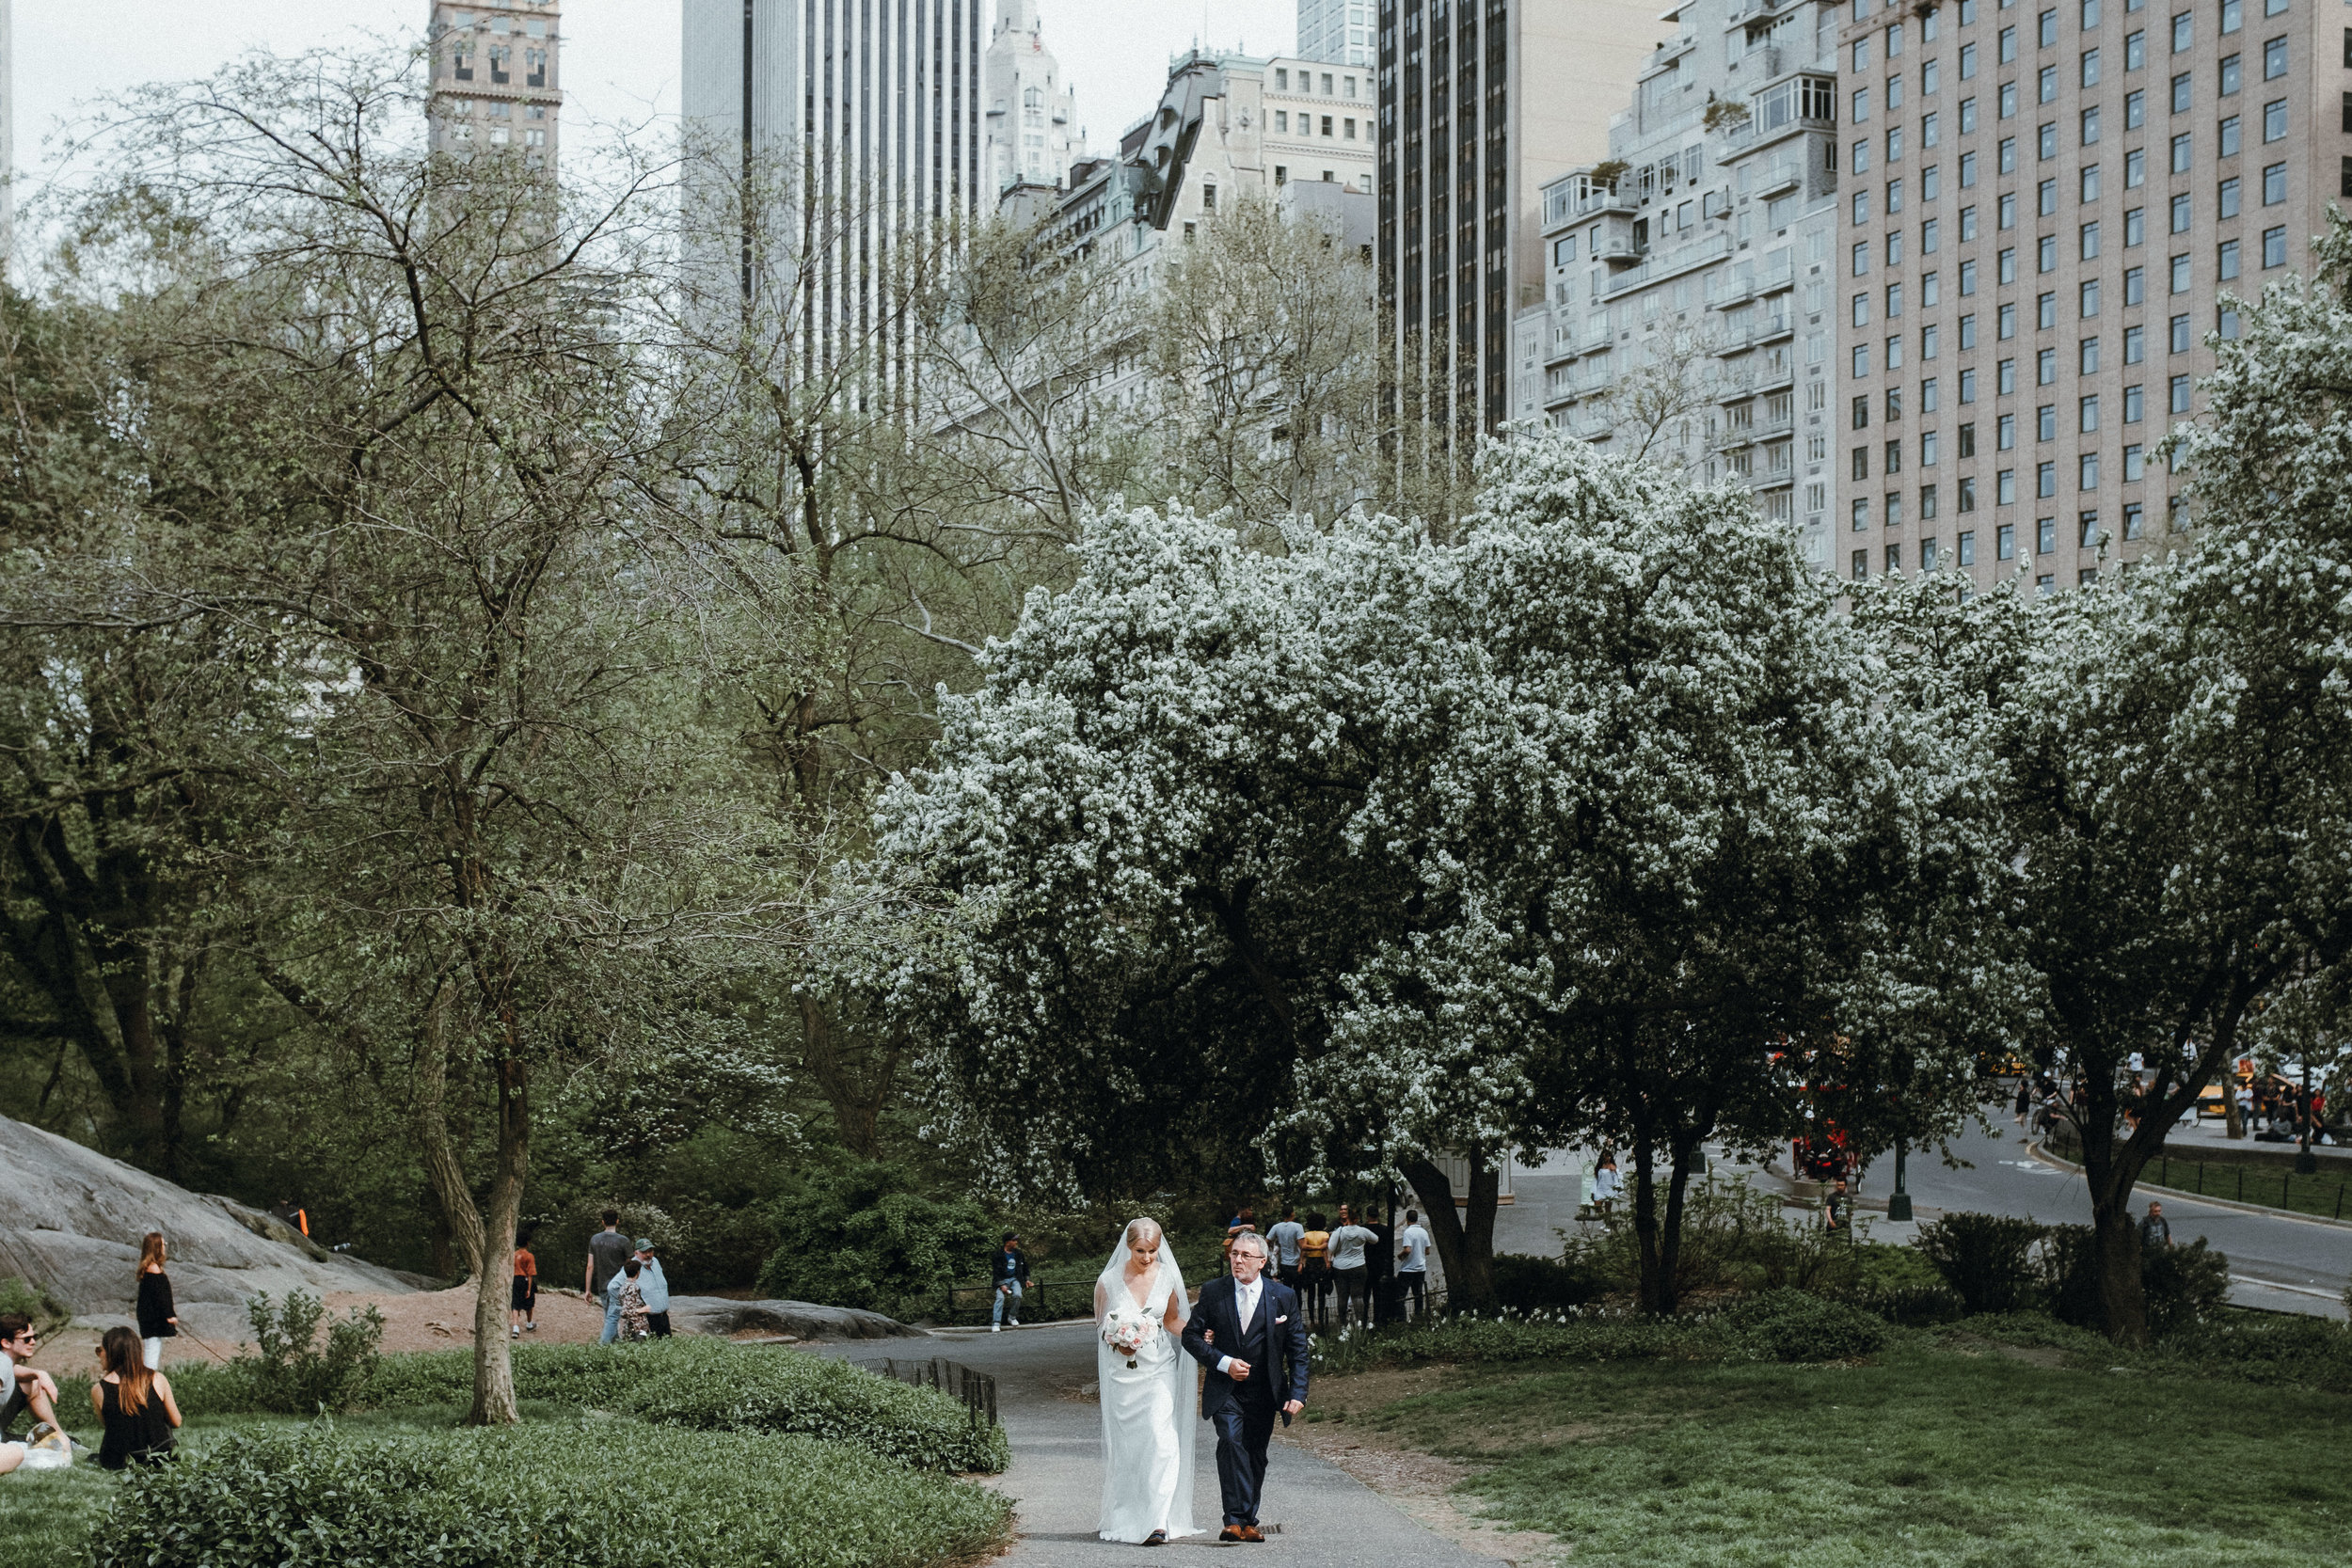 Bride walking up the aisle in Central Park to Cop cot